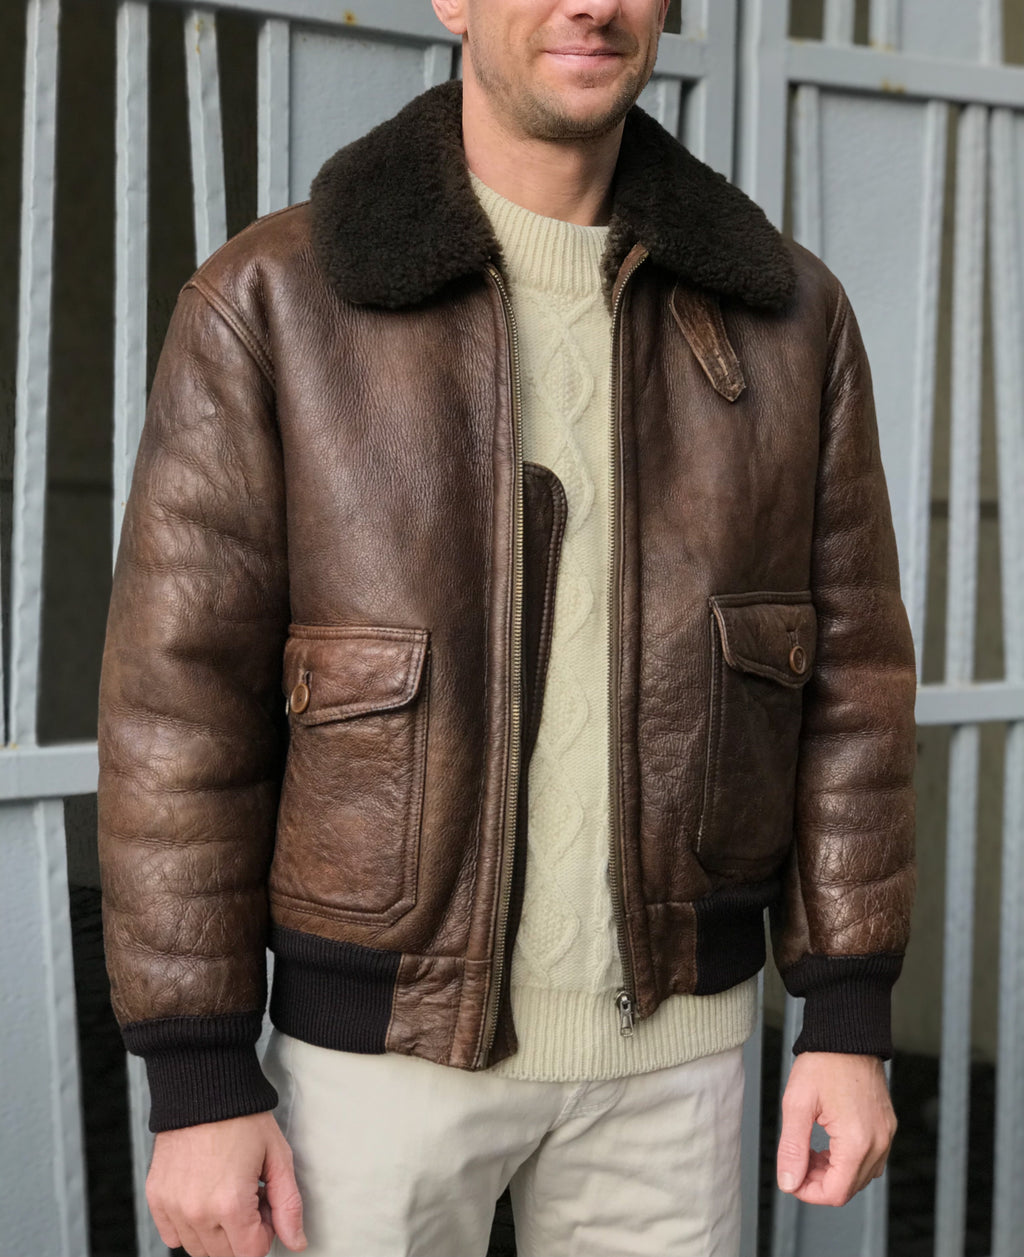 Men's Type A-2 Aviator Bomber Brown Shearling Jacket, USA 40, EU 50